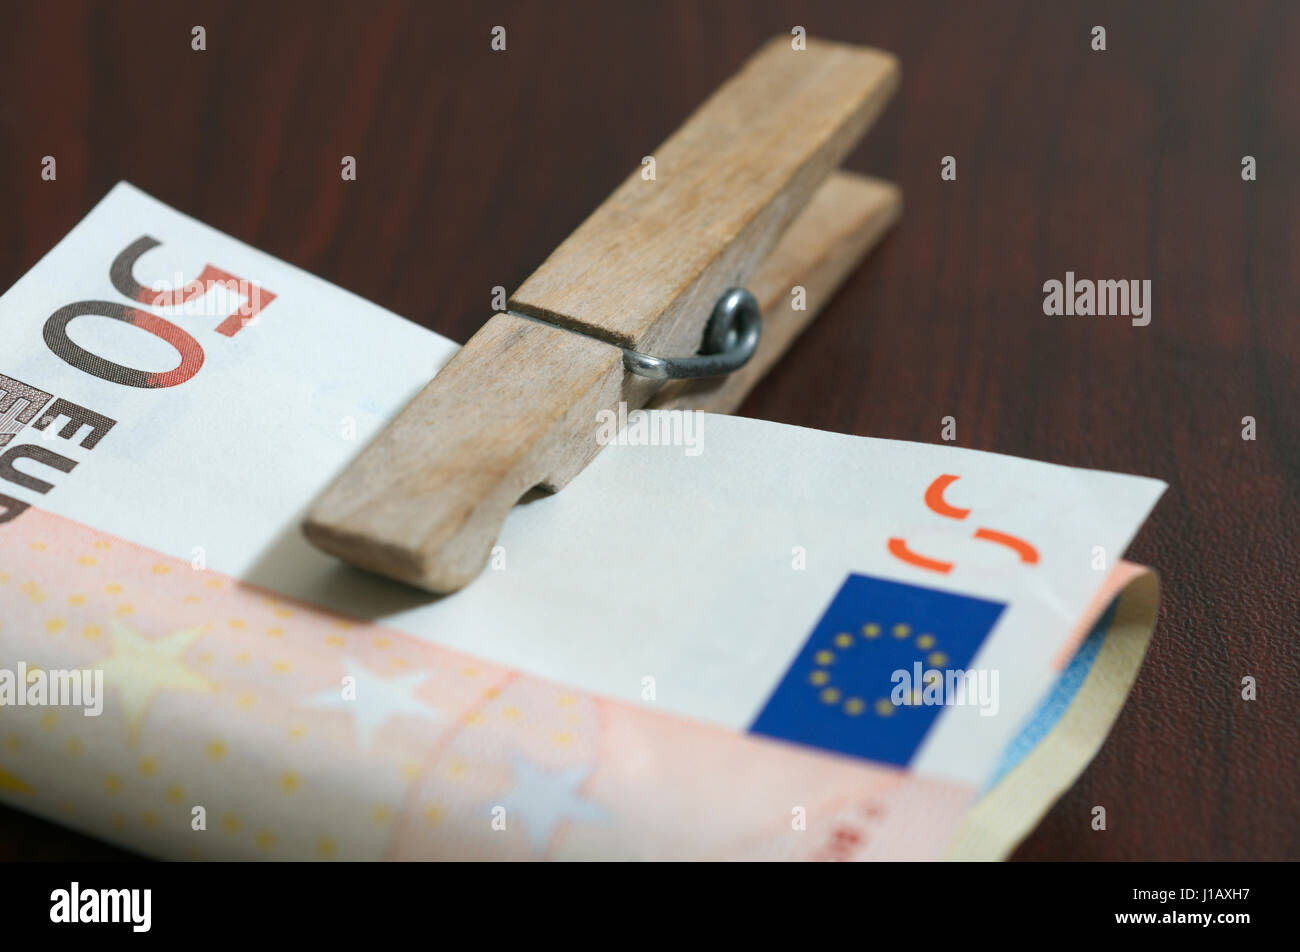 Euro banknotes held with a clothes peg - Stock Image